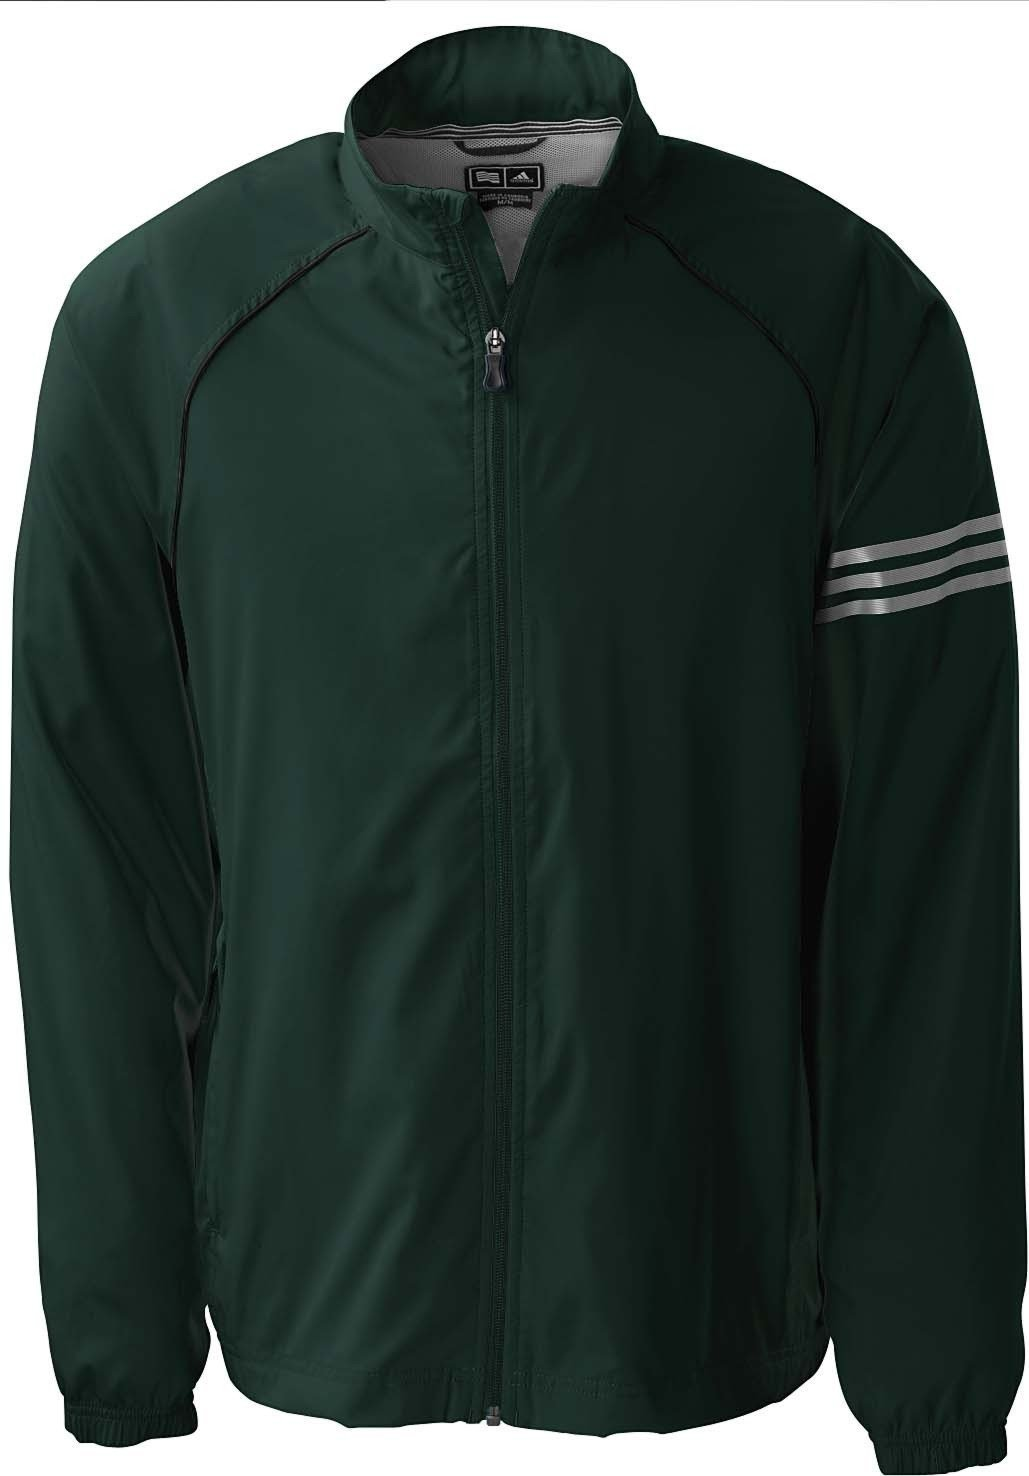 Adidas Mens A69 ClimaProof 3 Stripes Full Zip Jackets